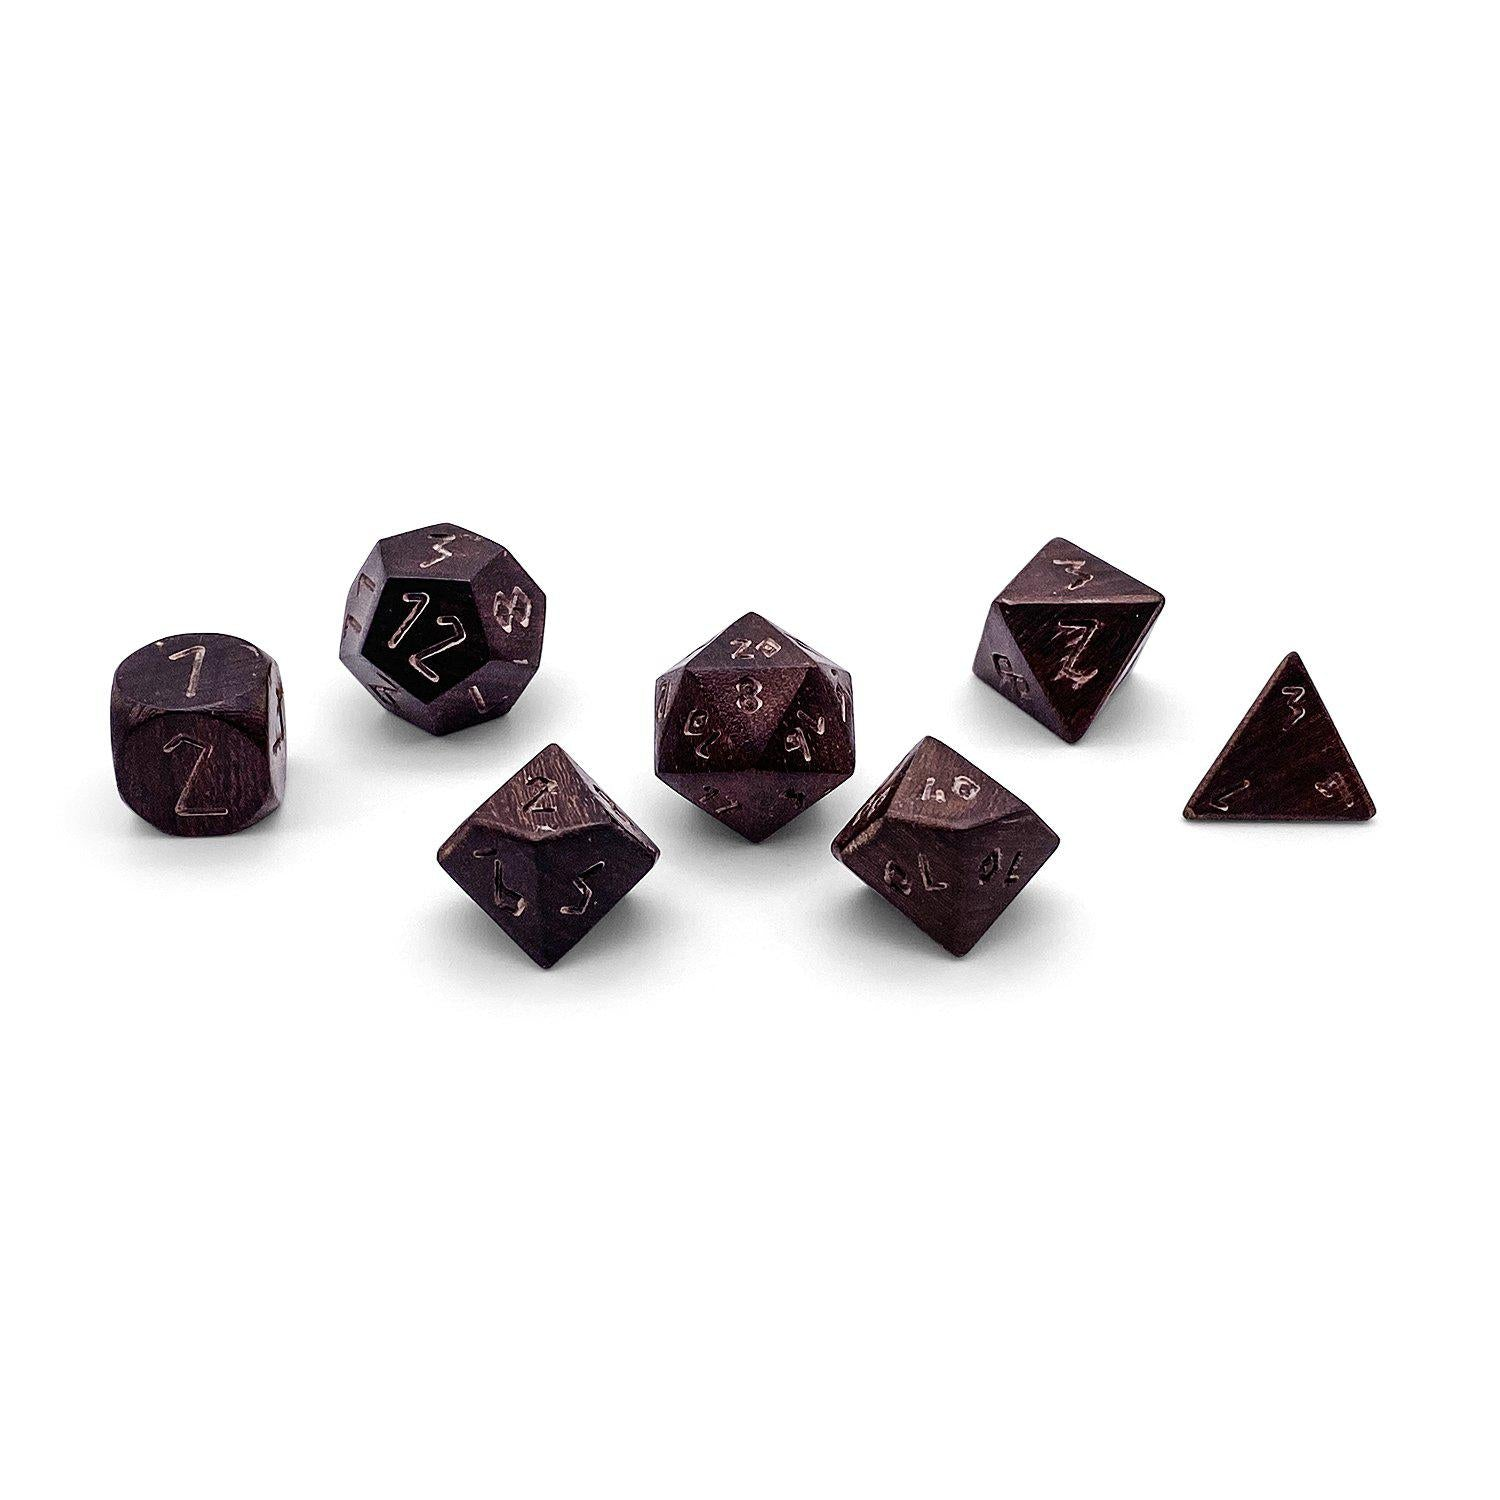 7 piece Wooden Dice Set - Pau Rosa